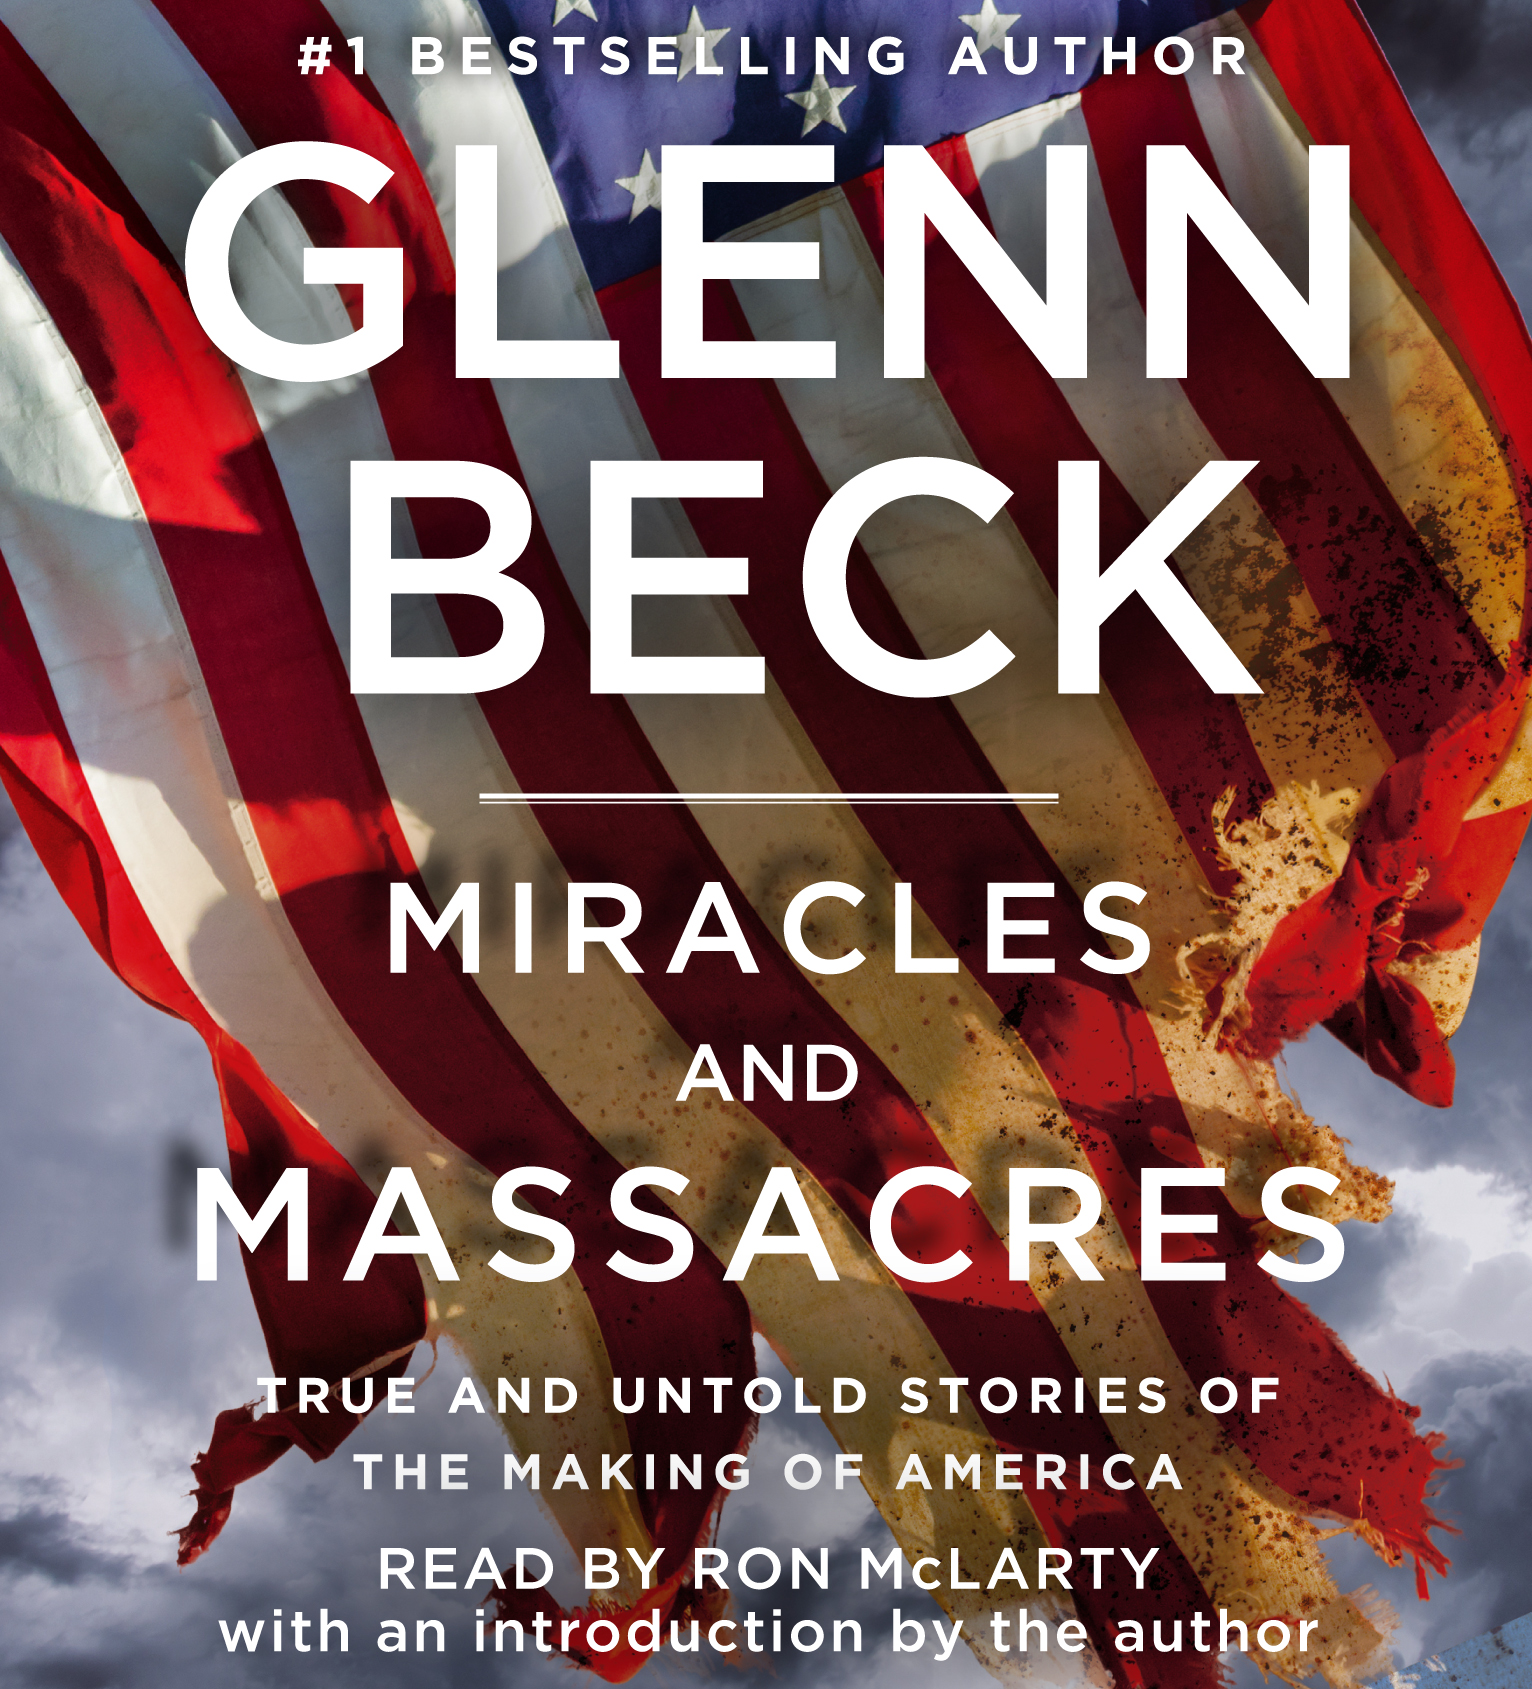 Glenn beck ron mclarty official publisher page simon amp schuster